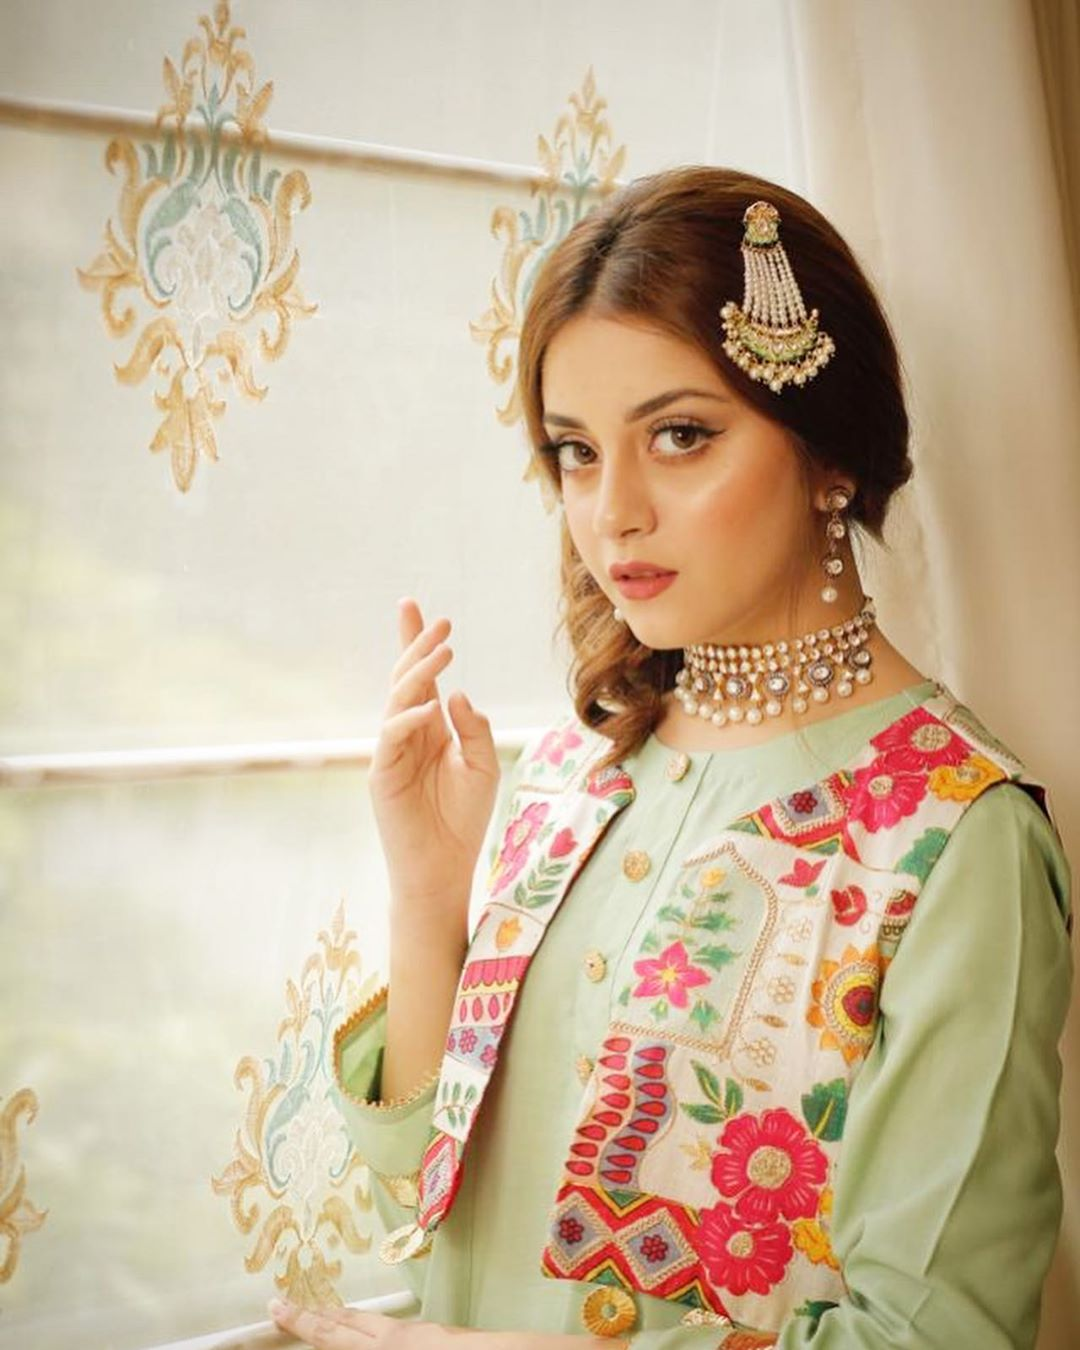 Beautiful Alizeh Shah New Photos with Refreshing Looks